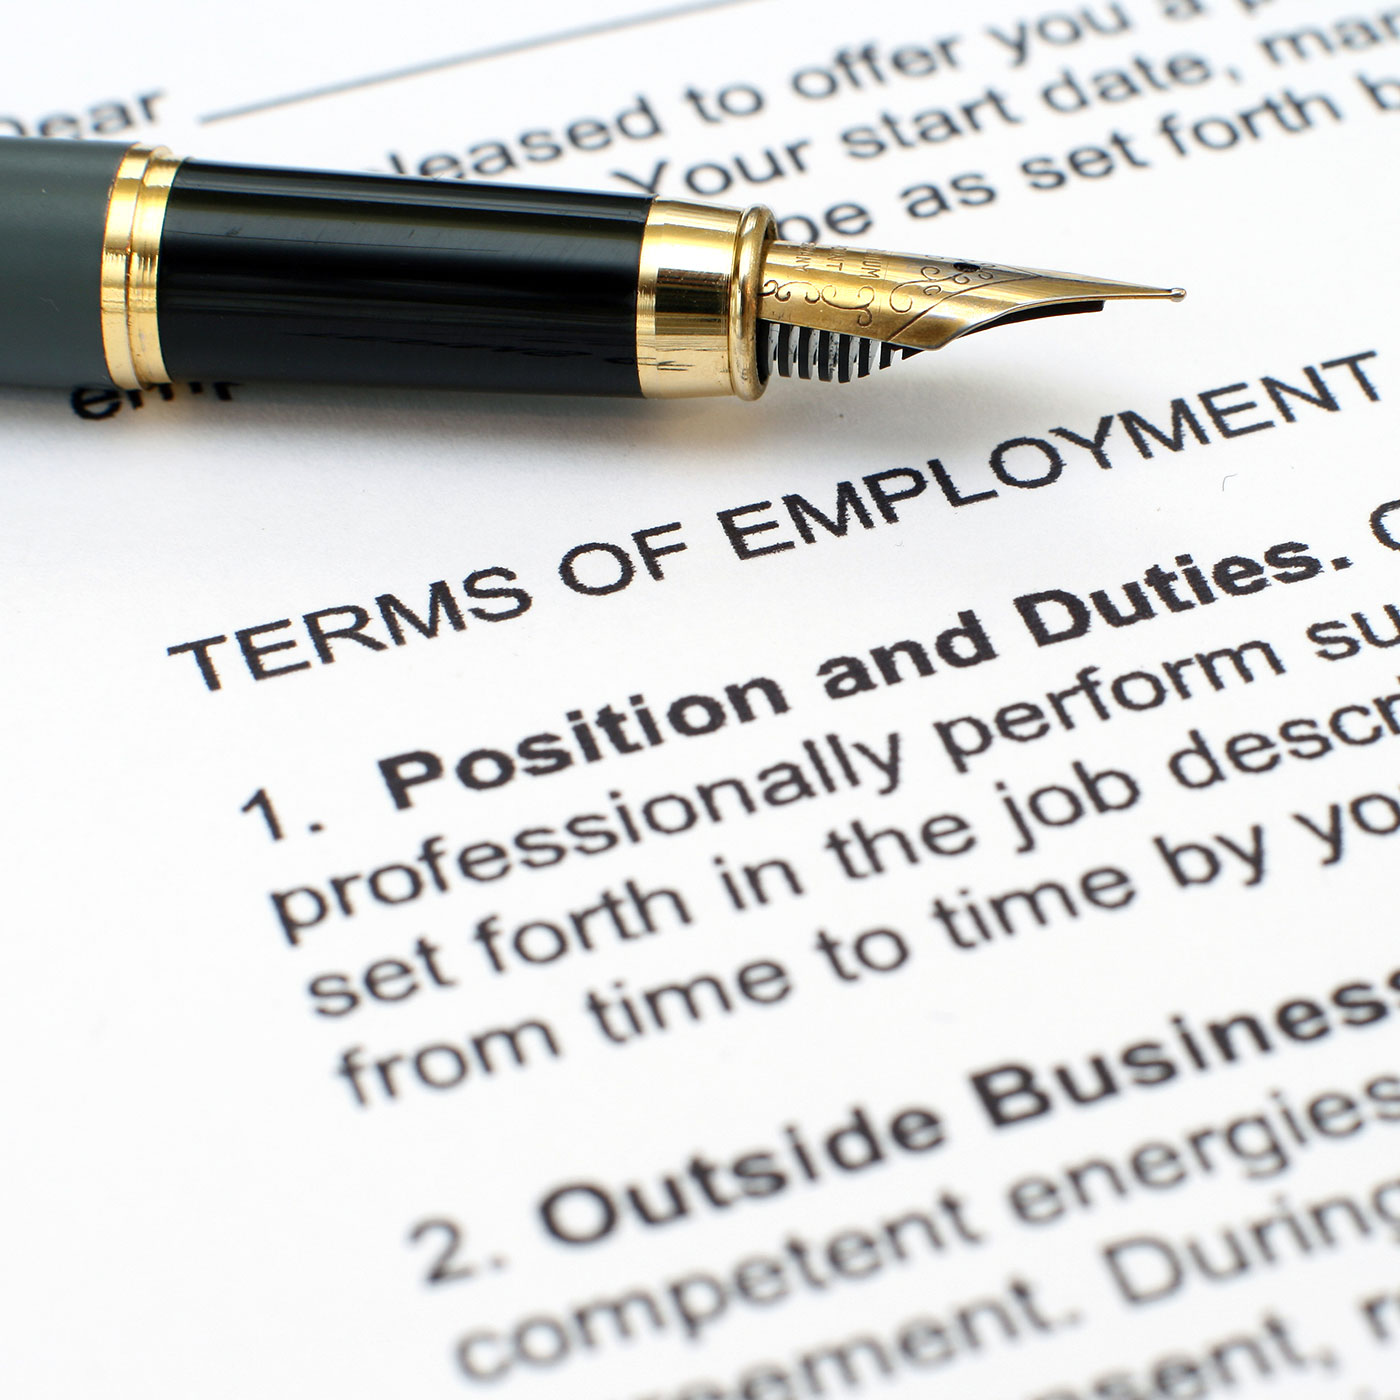 Terms of employment contract. MNS Attorneys can assist in Employment Law & Dispute Resolution matters.